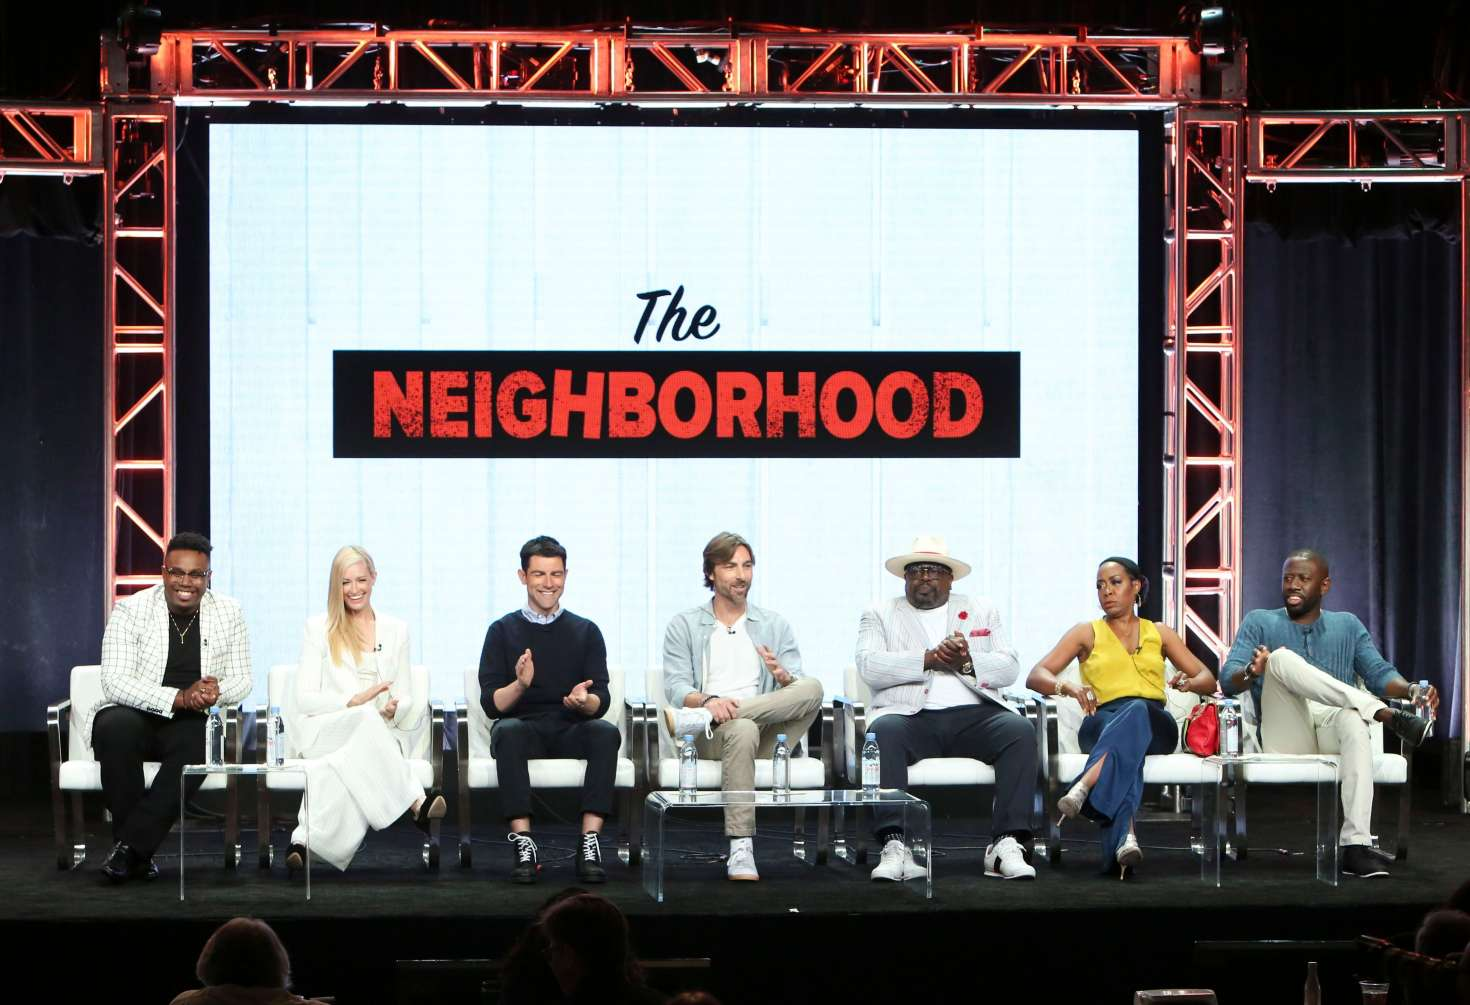 Beth Behrs 2018 : Beth Behrs: The Neighborhood Panel at 2018 TCA Summer Press Tour -02